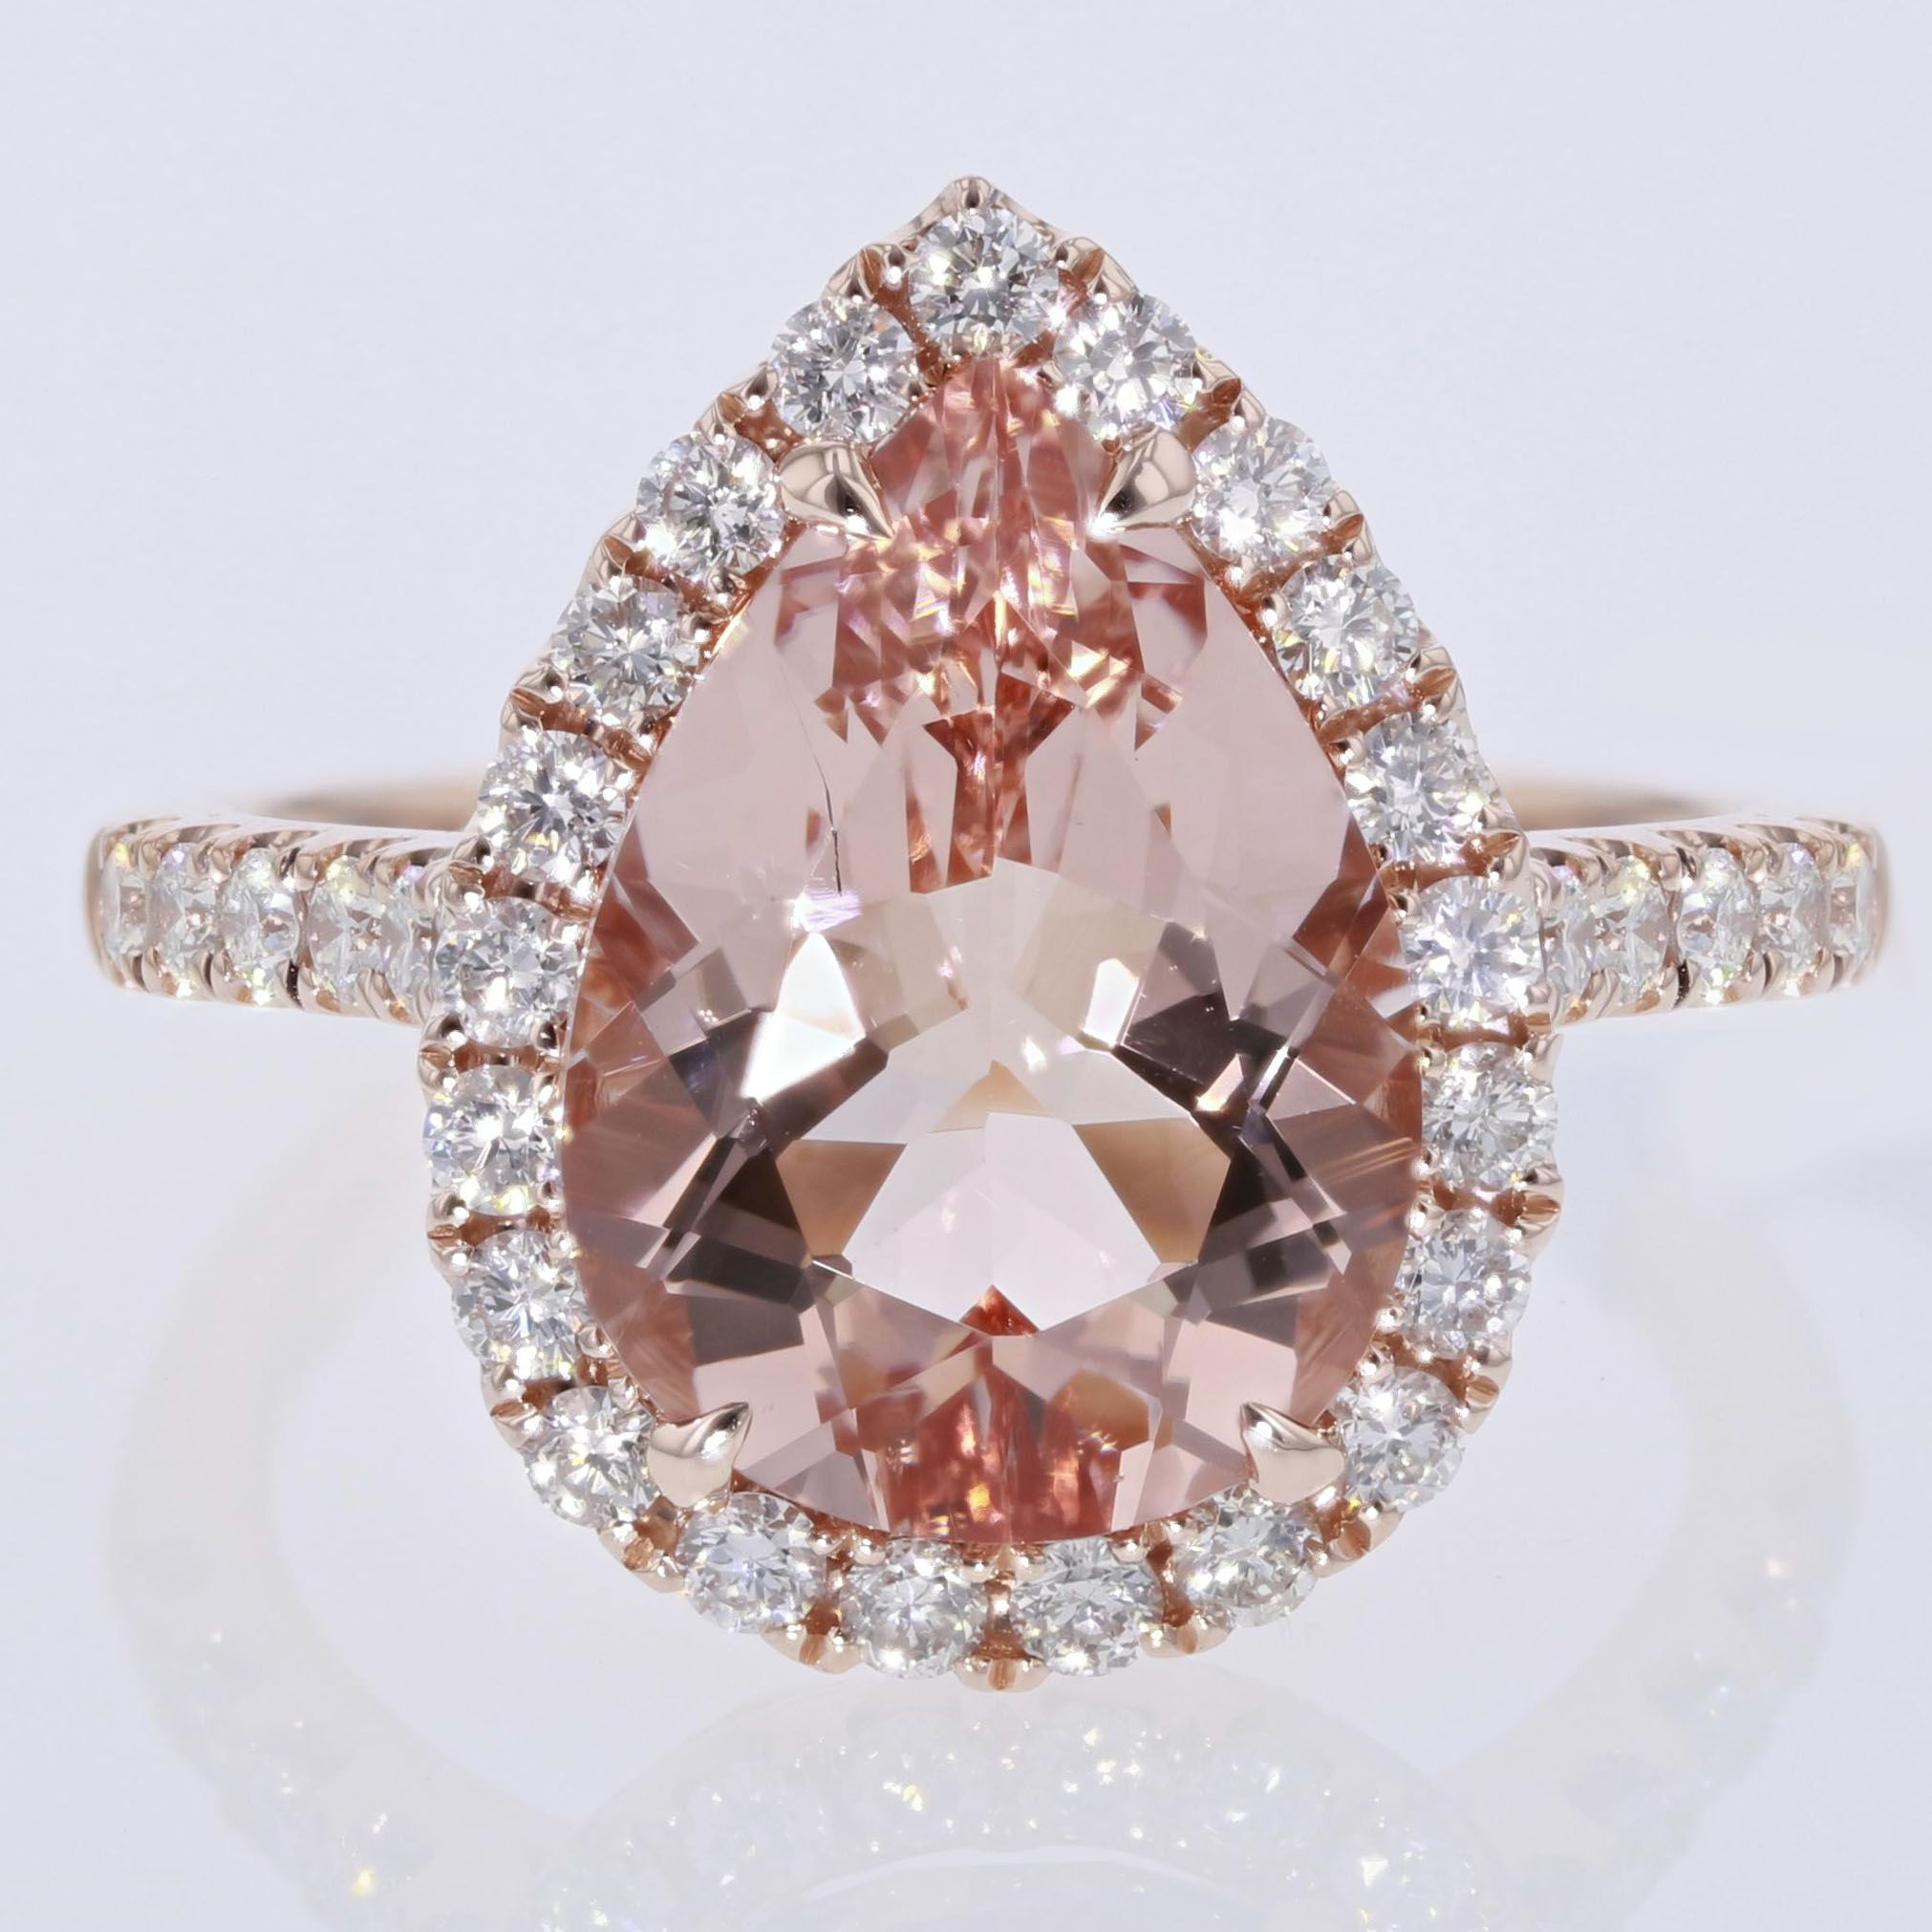 a of designer engagement pin stores jewellery popular shop setting robbins bands this two the do browse love store brothers and tone ring selection you couture wedding more largest find near rings jewelry diamond online